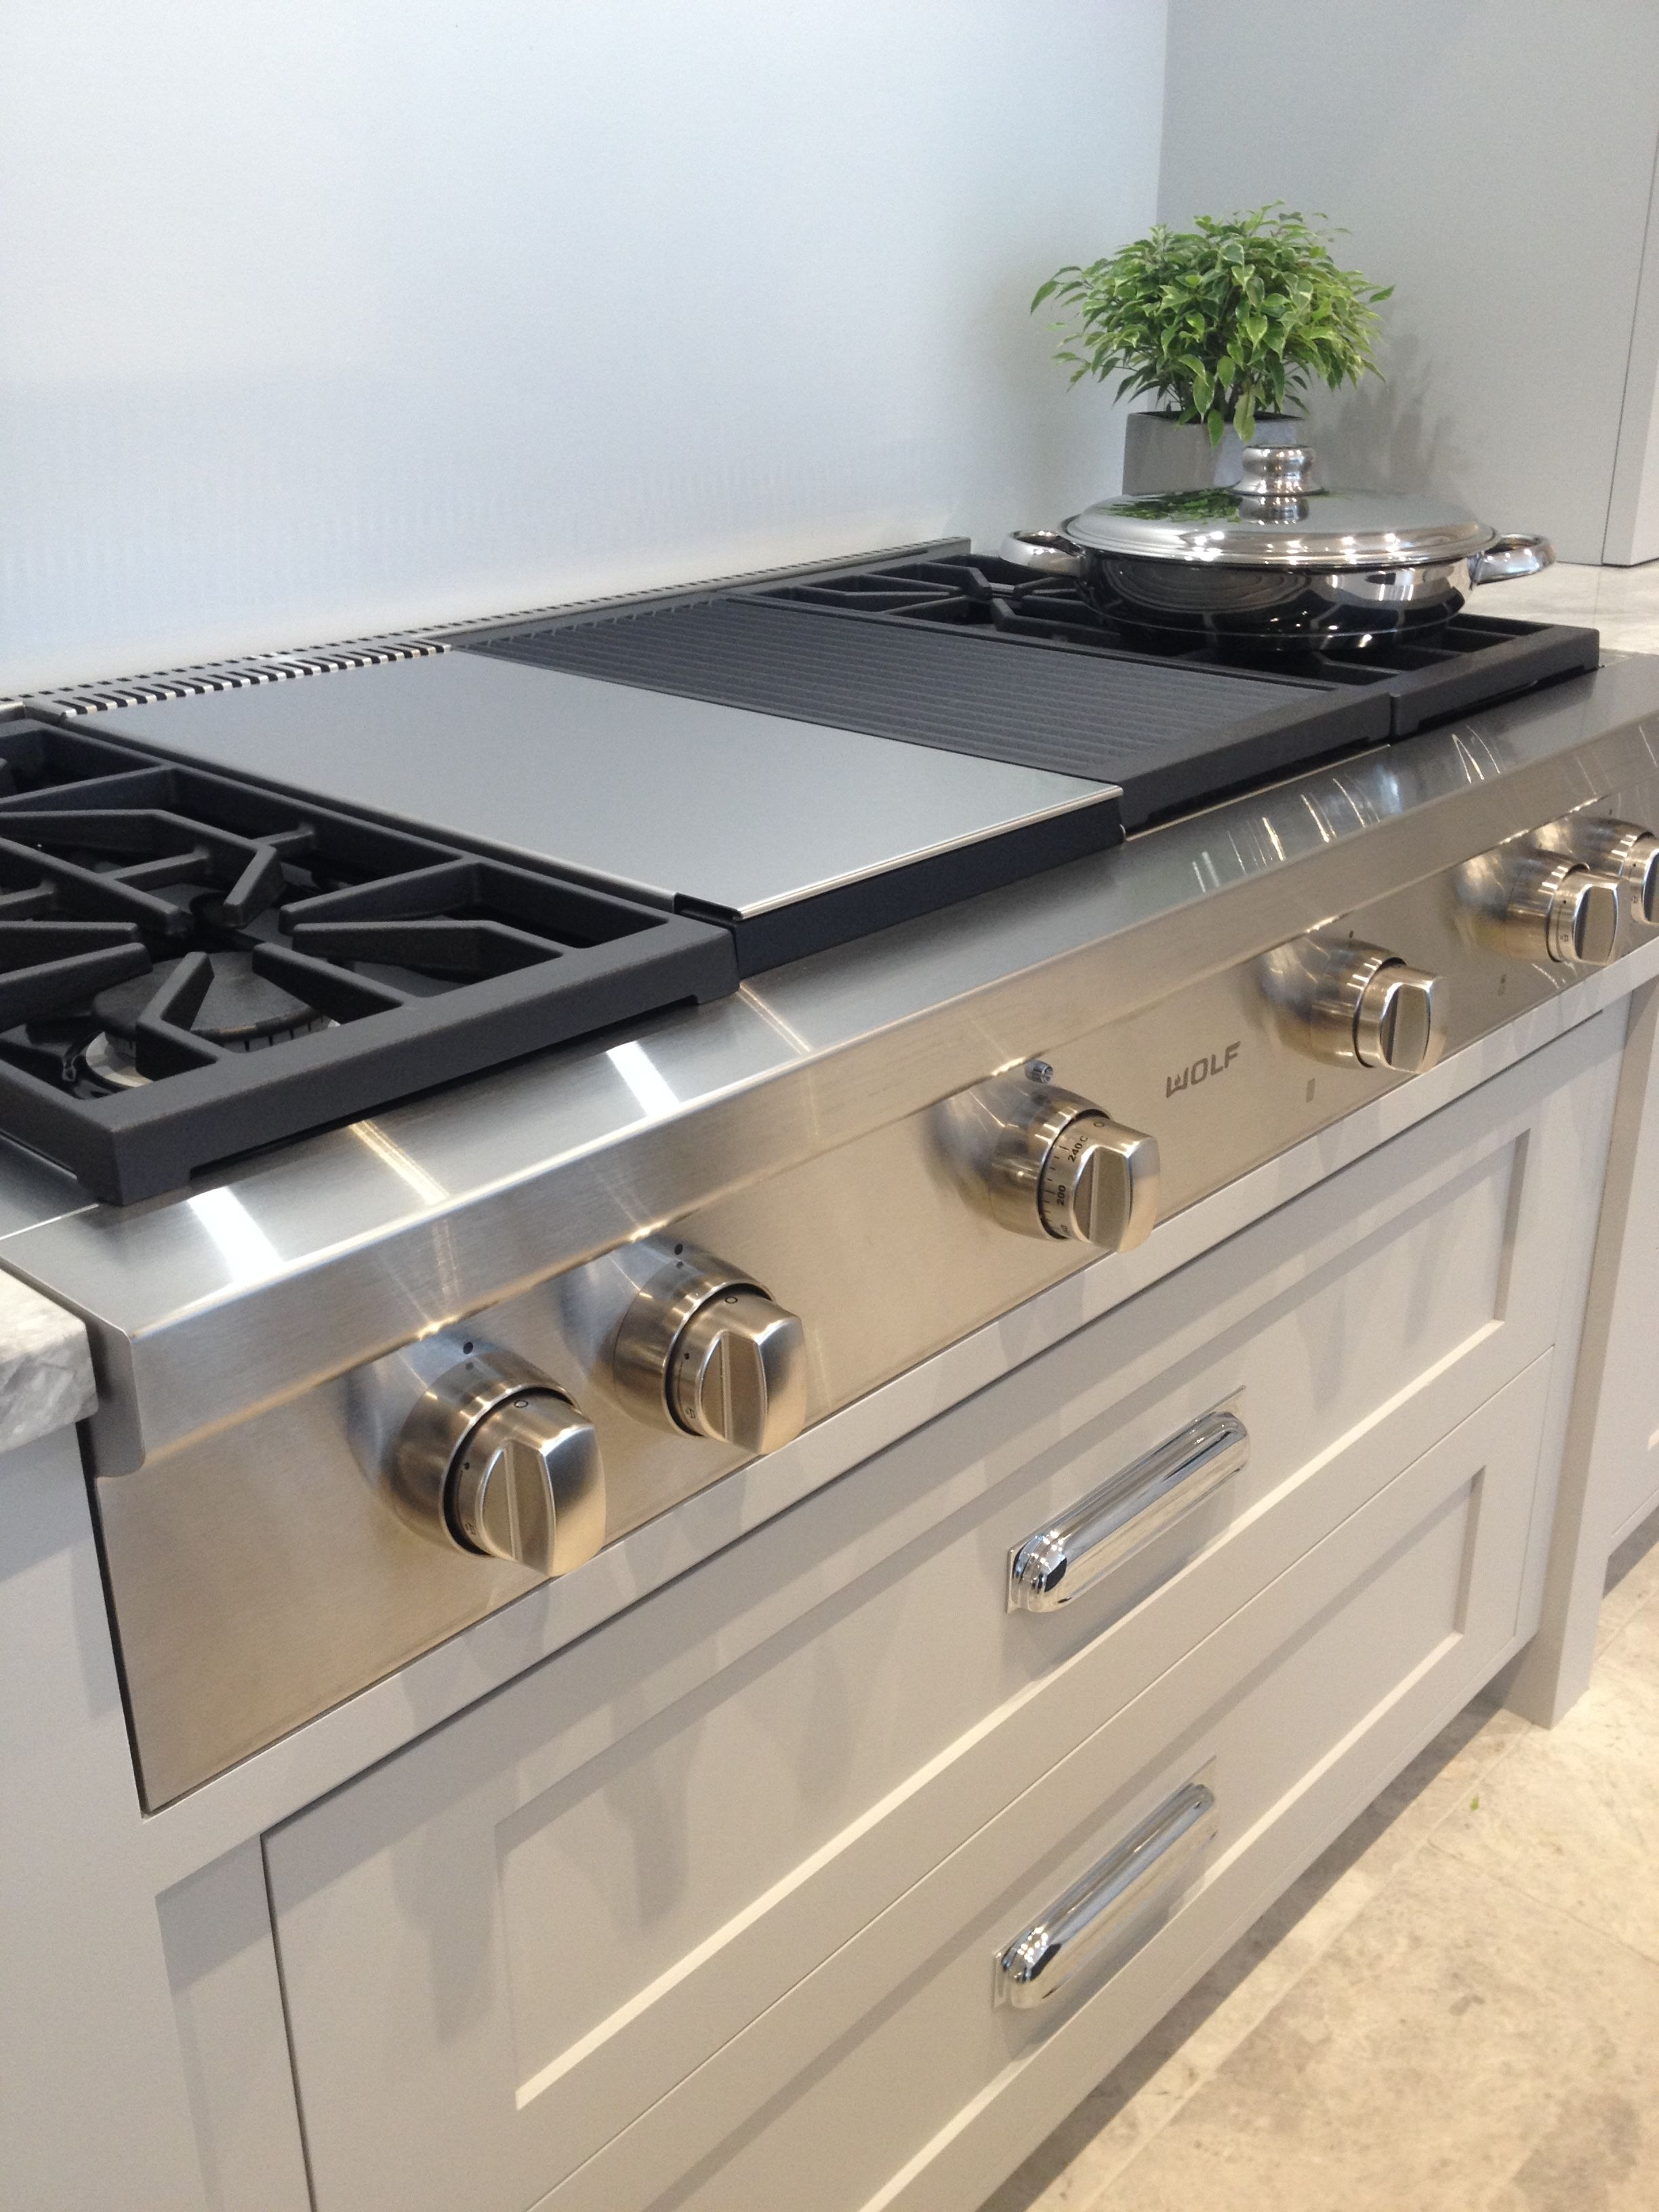 Sub Zero Wolf Range Cook Top On Display At Our Showroom Simple Kitchen Kitchen Inspirations Kitchen Stove